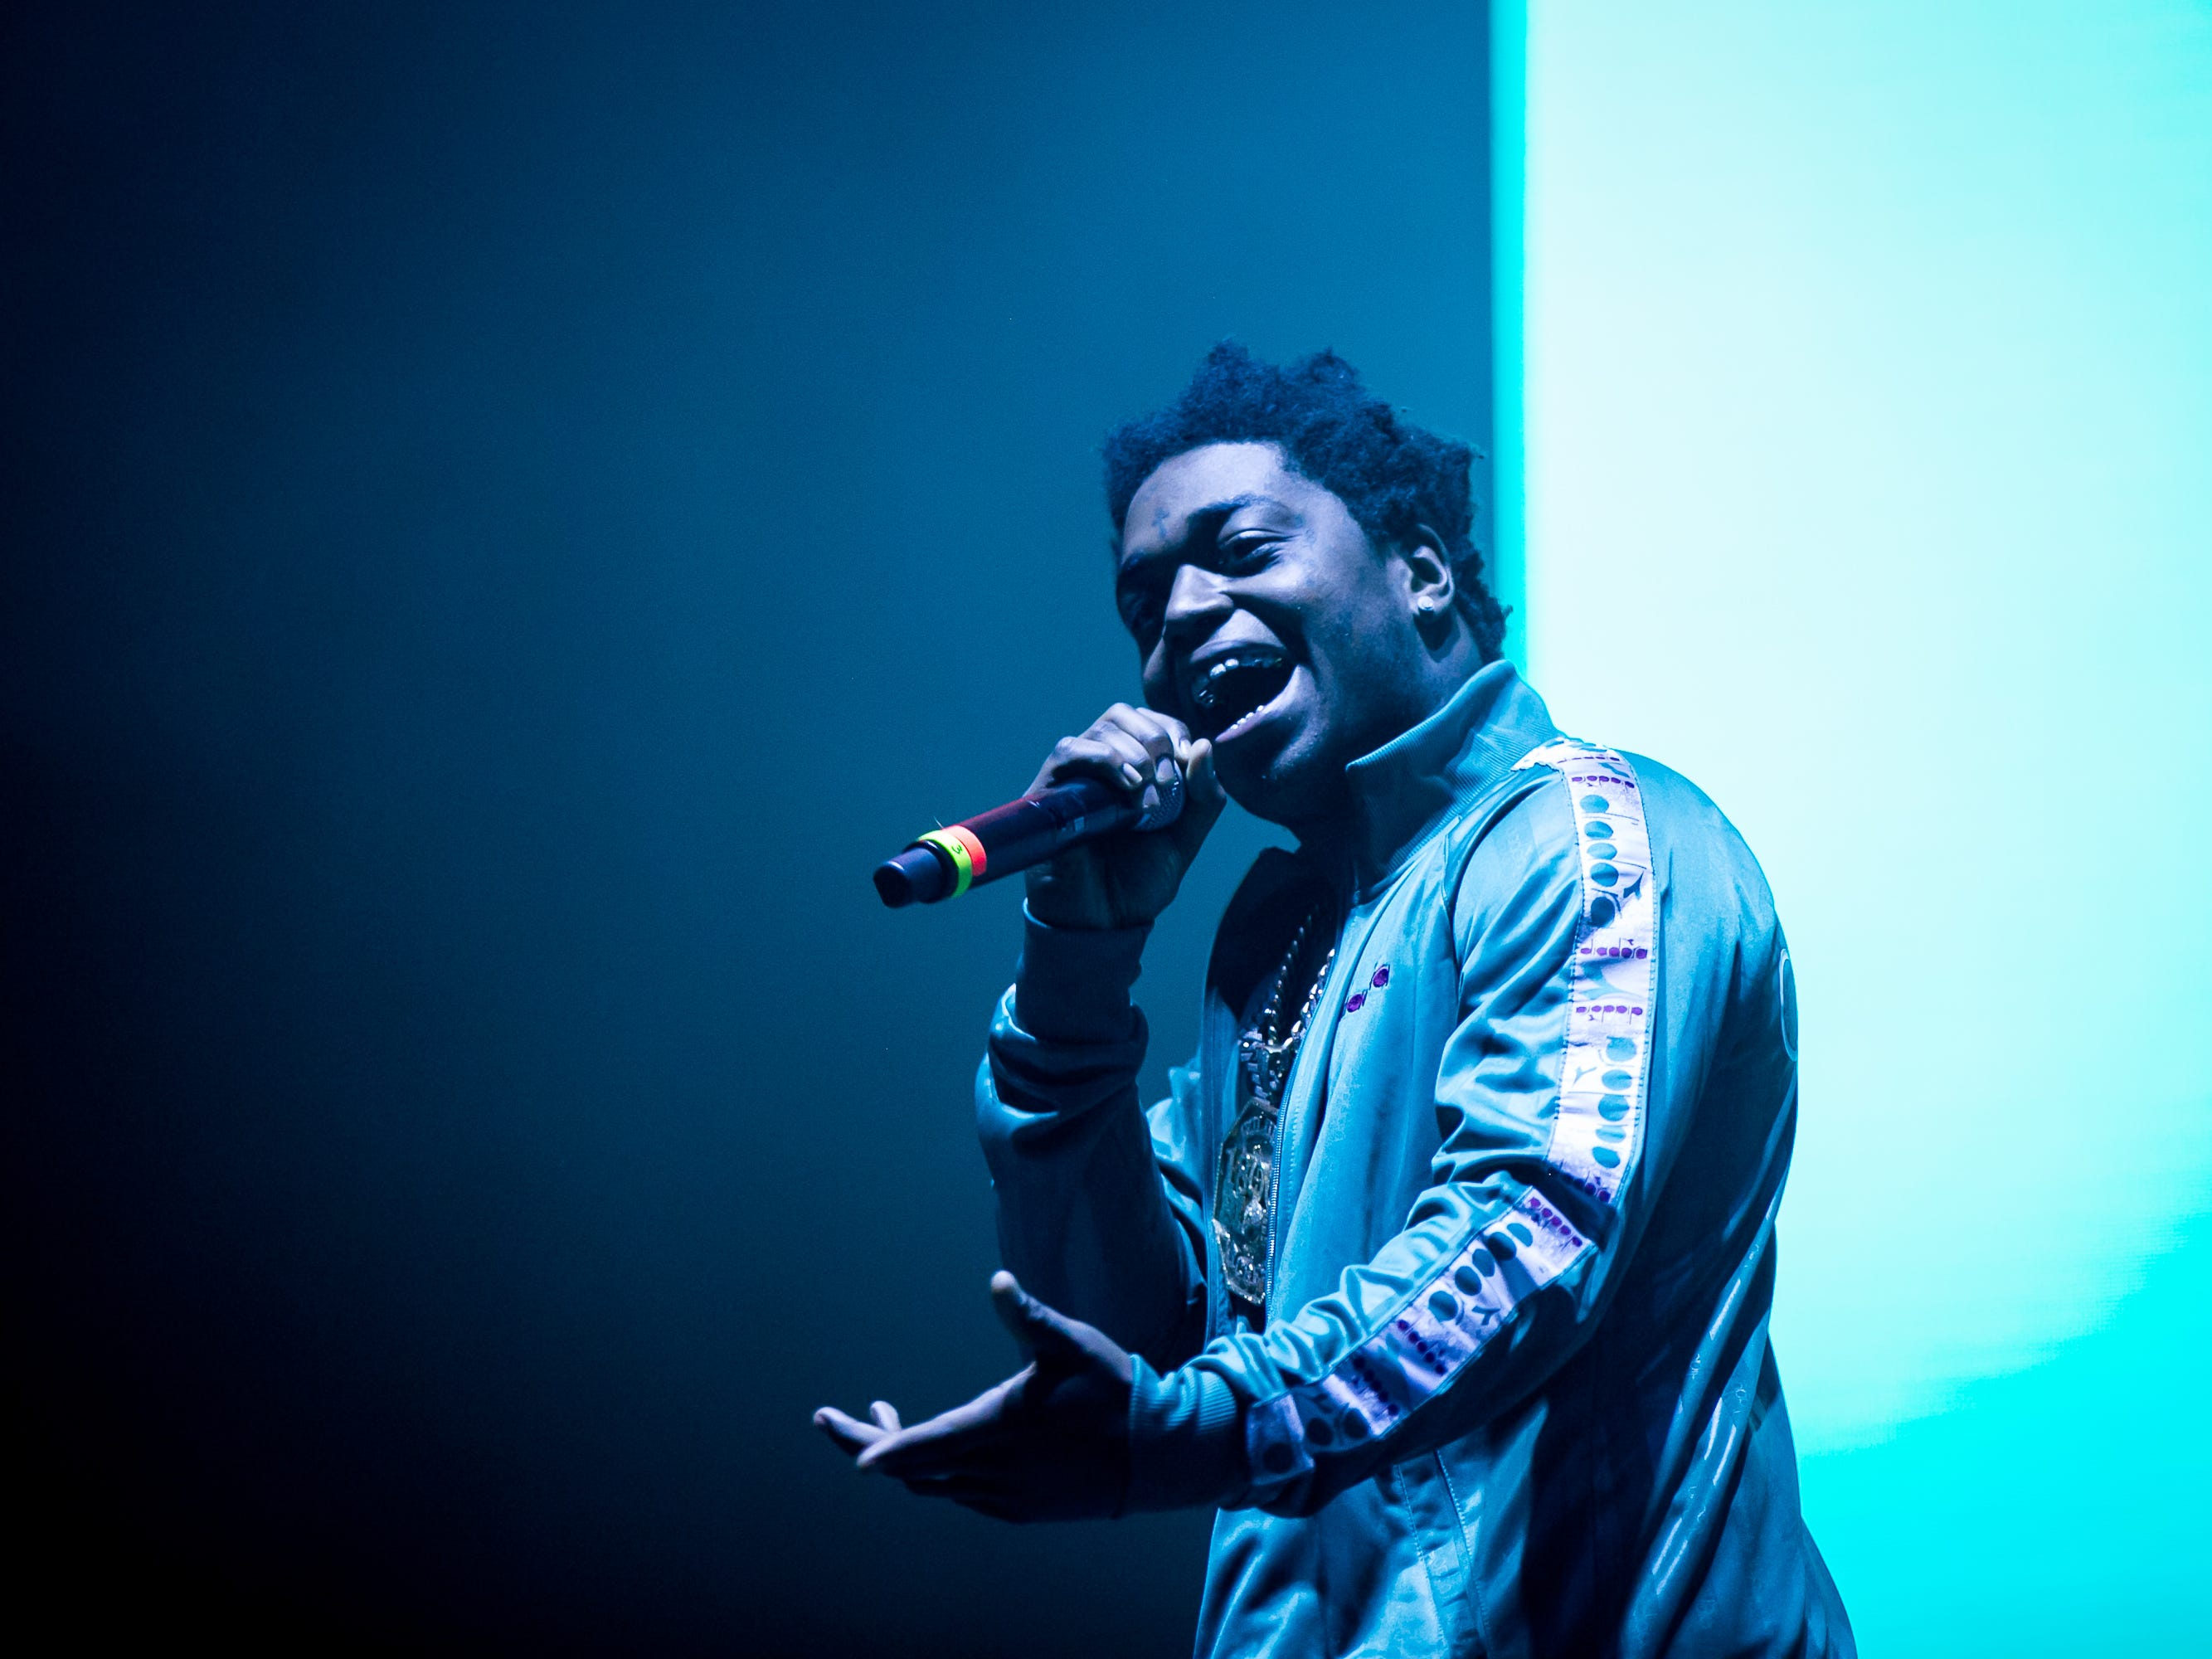 Kodak Black performed at Pot of Gold Music Festival at Steele Indian School Park on Saturday, March 16, 2019.